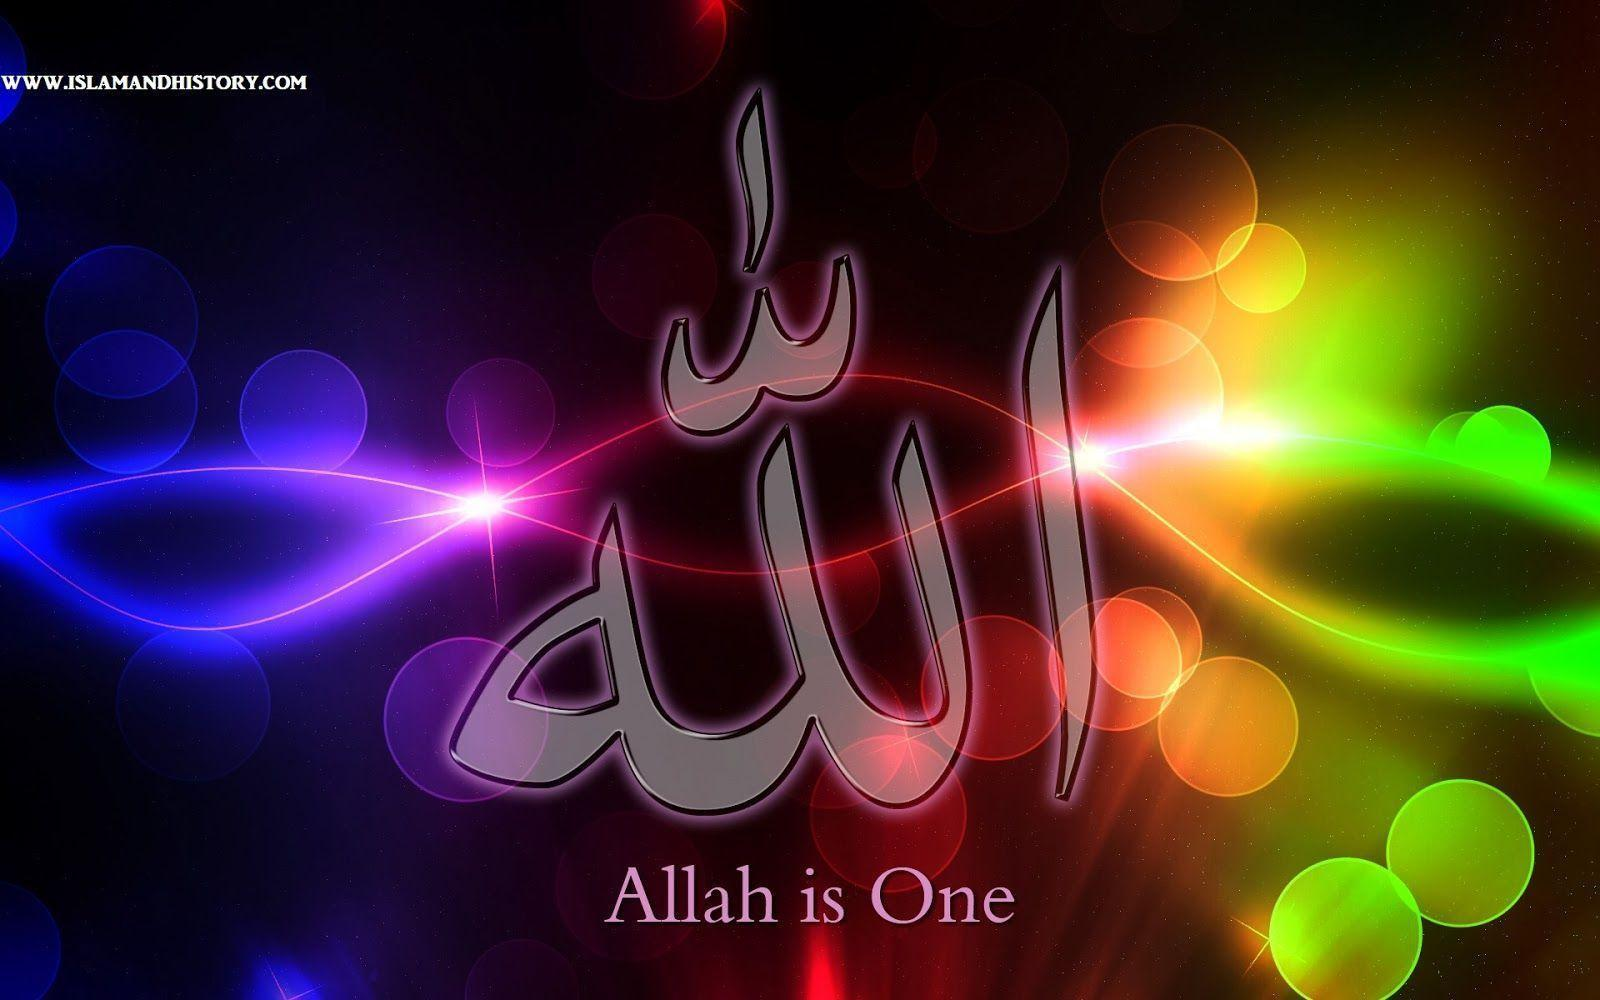 Allah Wallpapers HD 2015 1600x1000